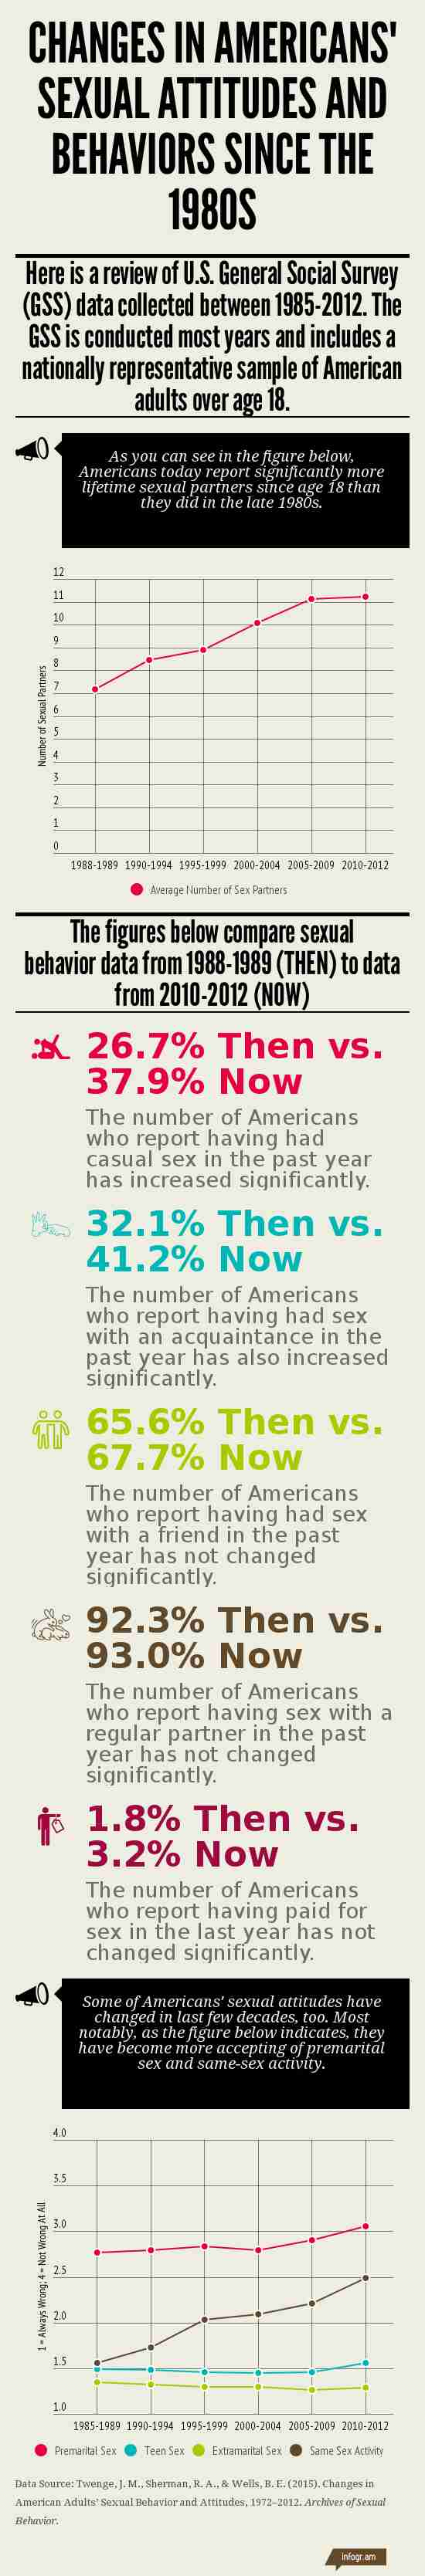 Changes in Americans' Sexual Attitudes and Behaviors Since the 1980s Infographic